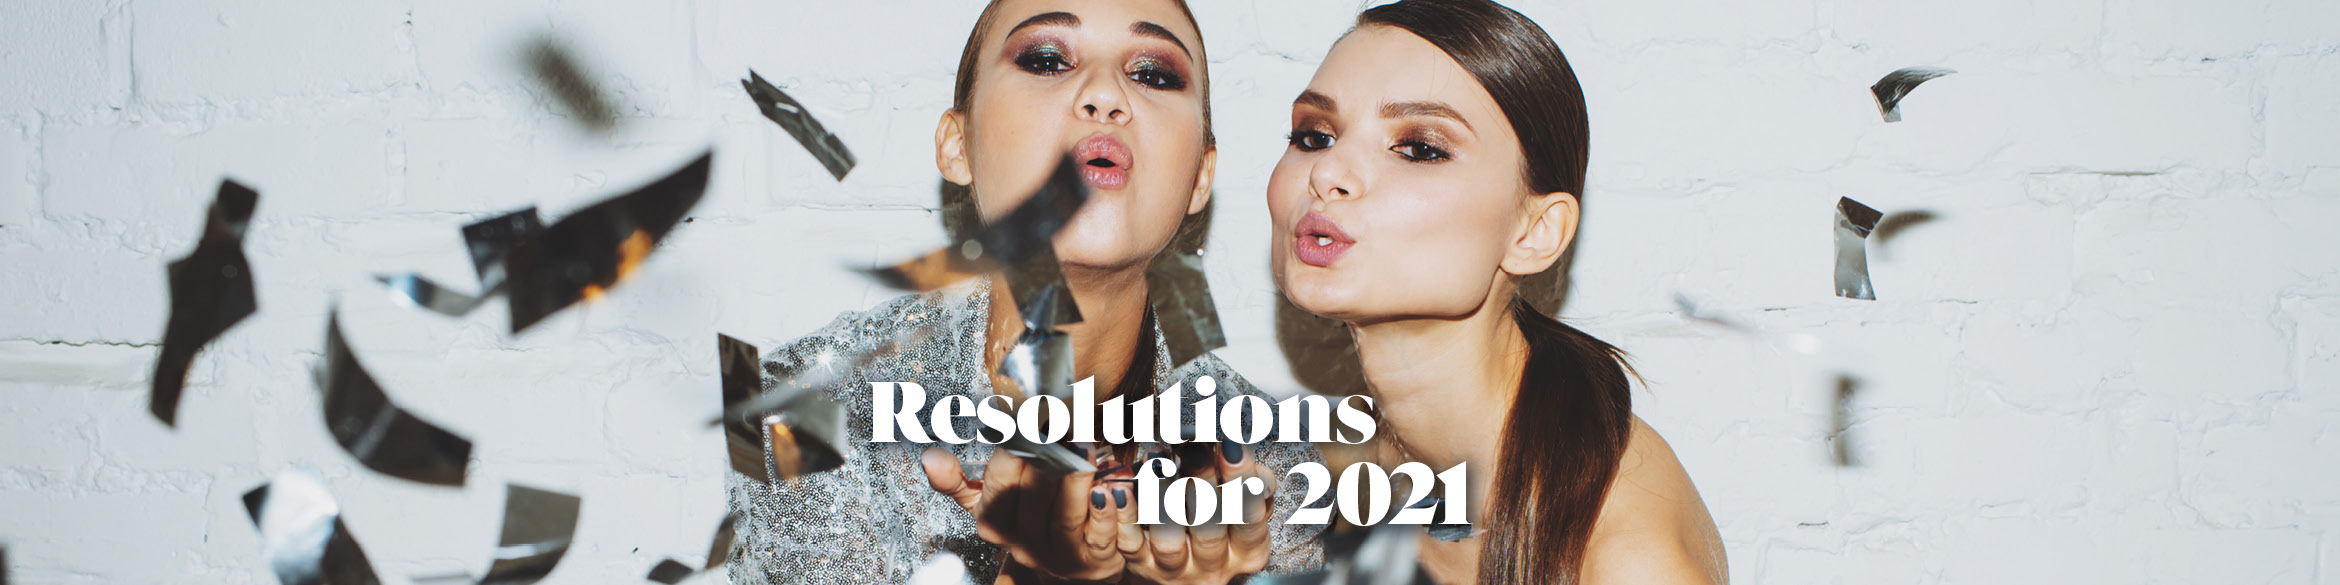 RESOLUTIONS FOR 2021: the best articles for your list